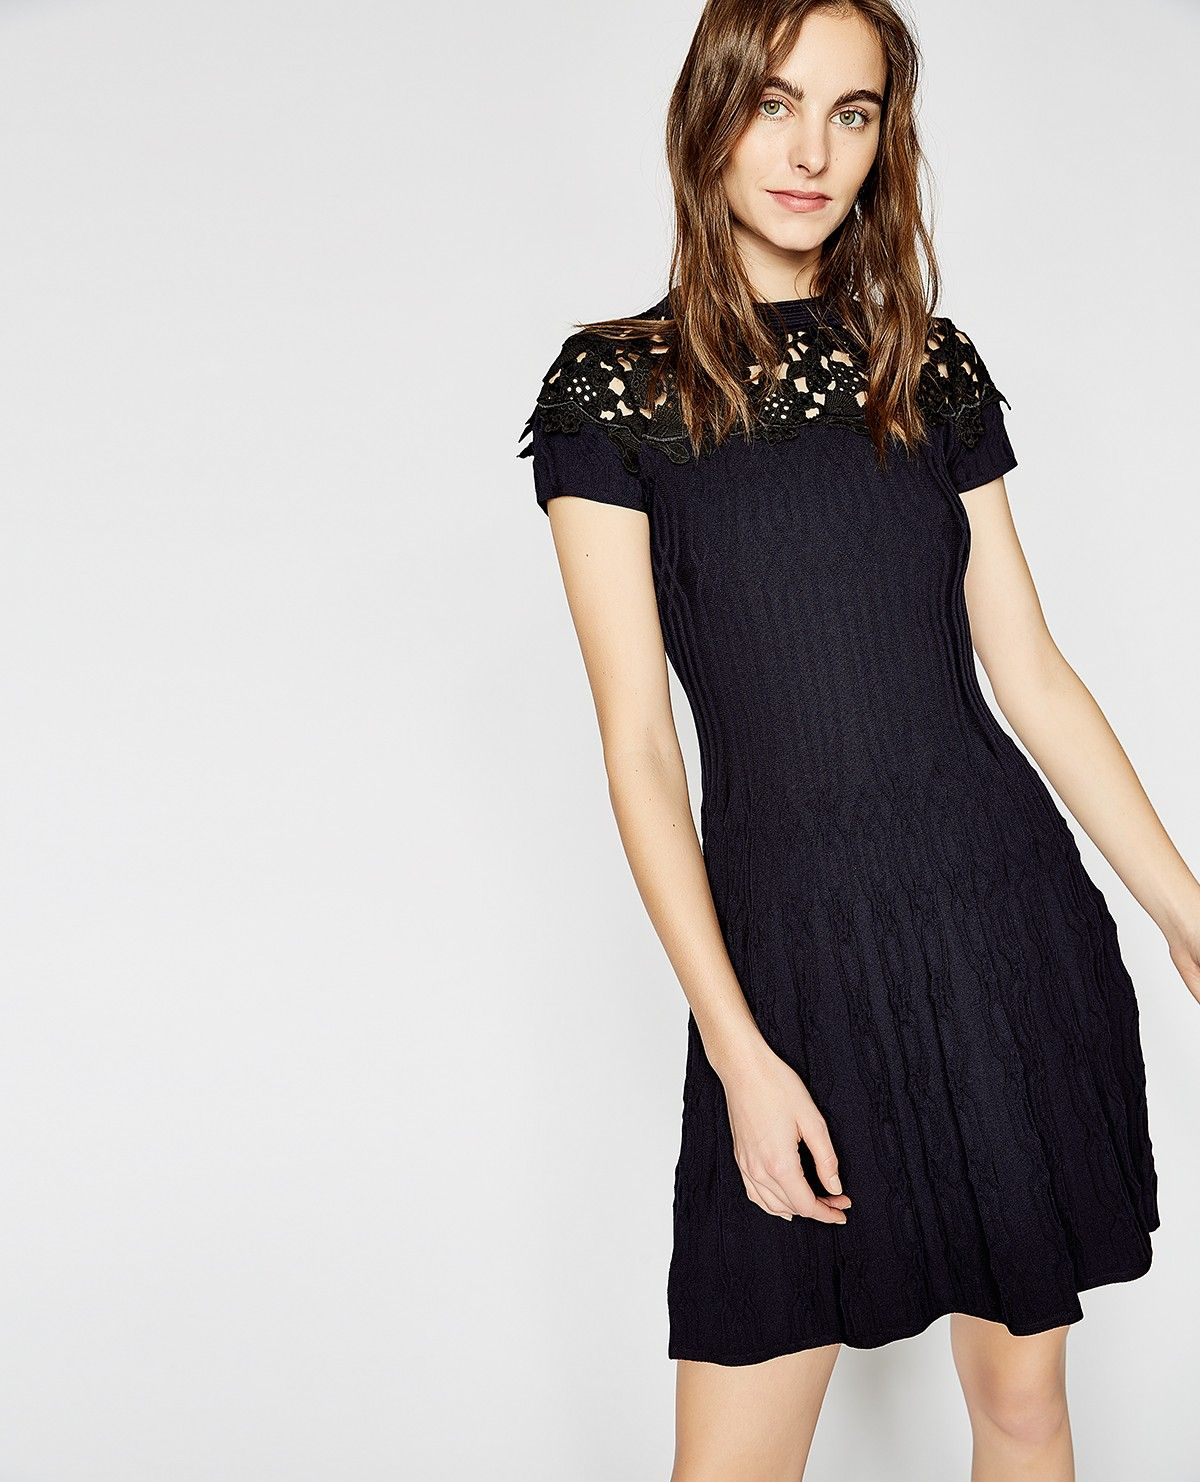 This short dress is made from figure hugging stretch knit the navy